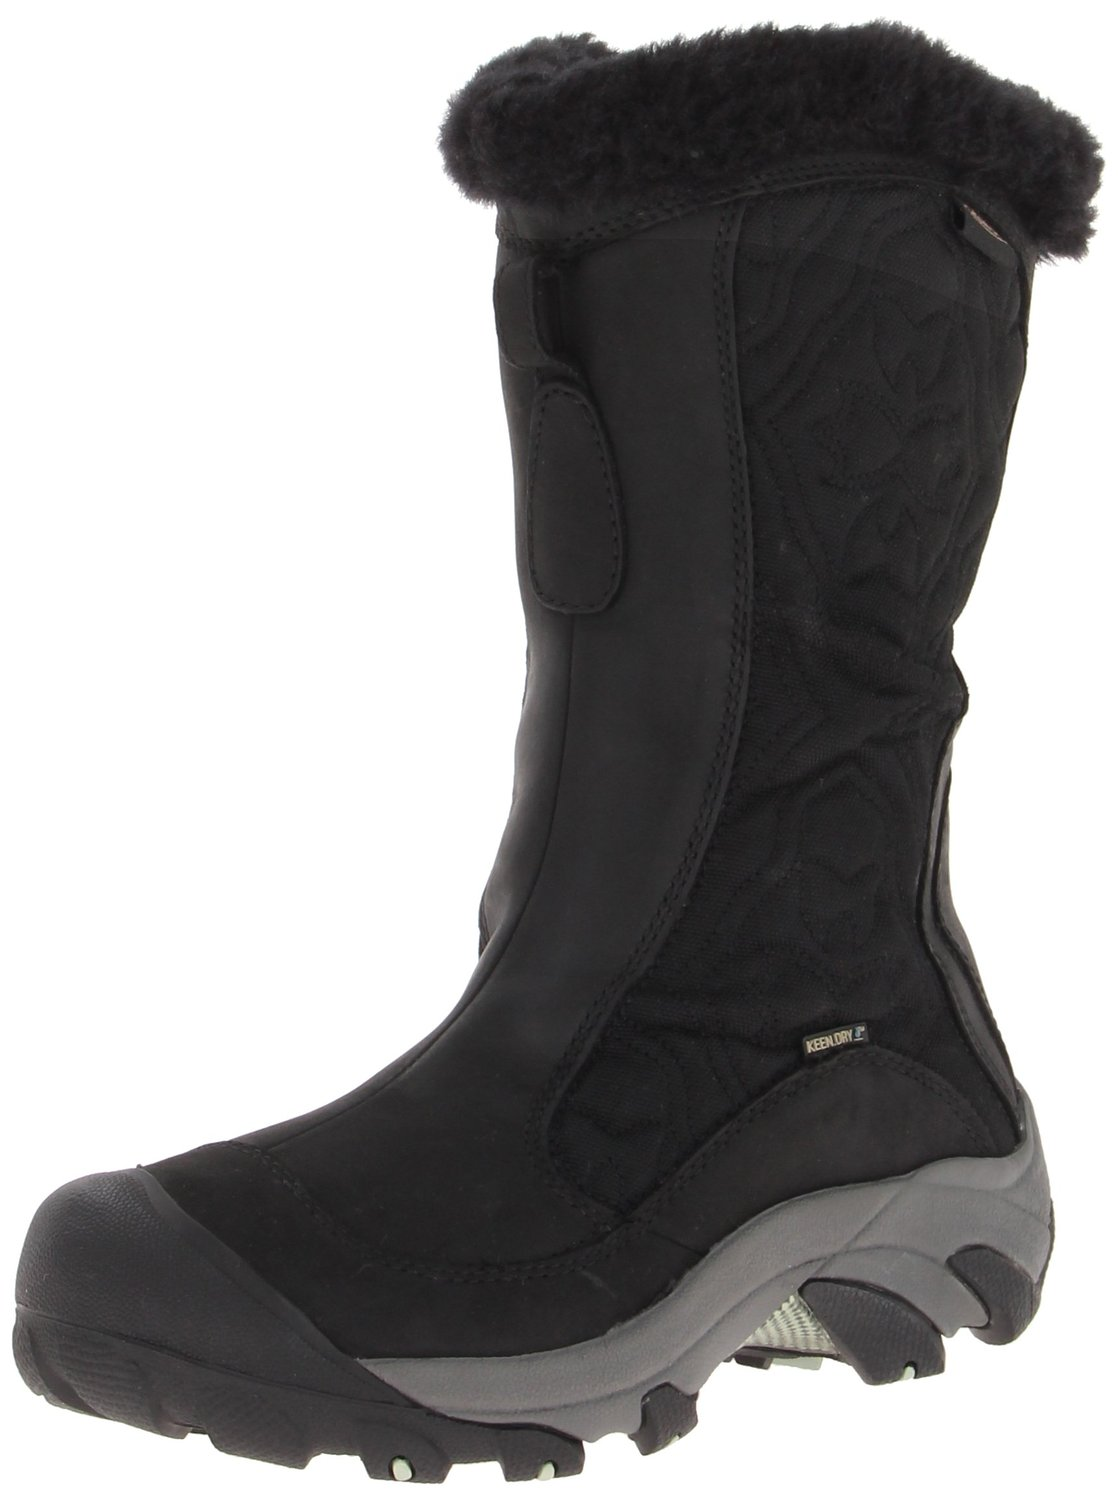 keen betty ii waterproof mid calf high snow boot. Black Bedroom Furniture Sets. Home Design Ideas